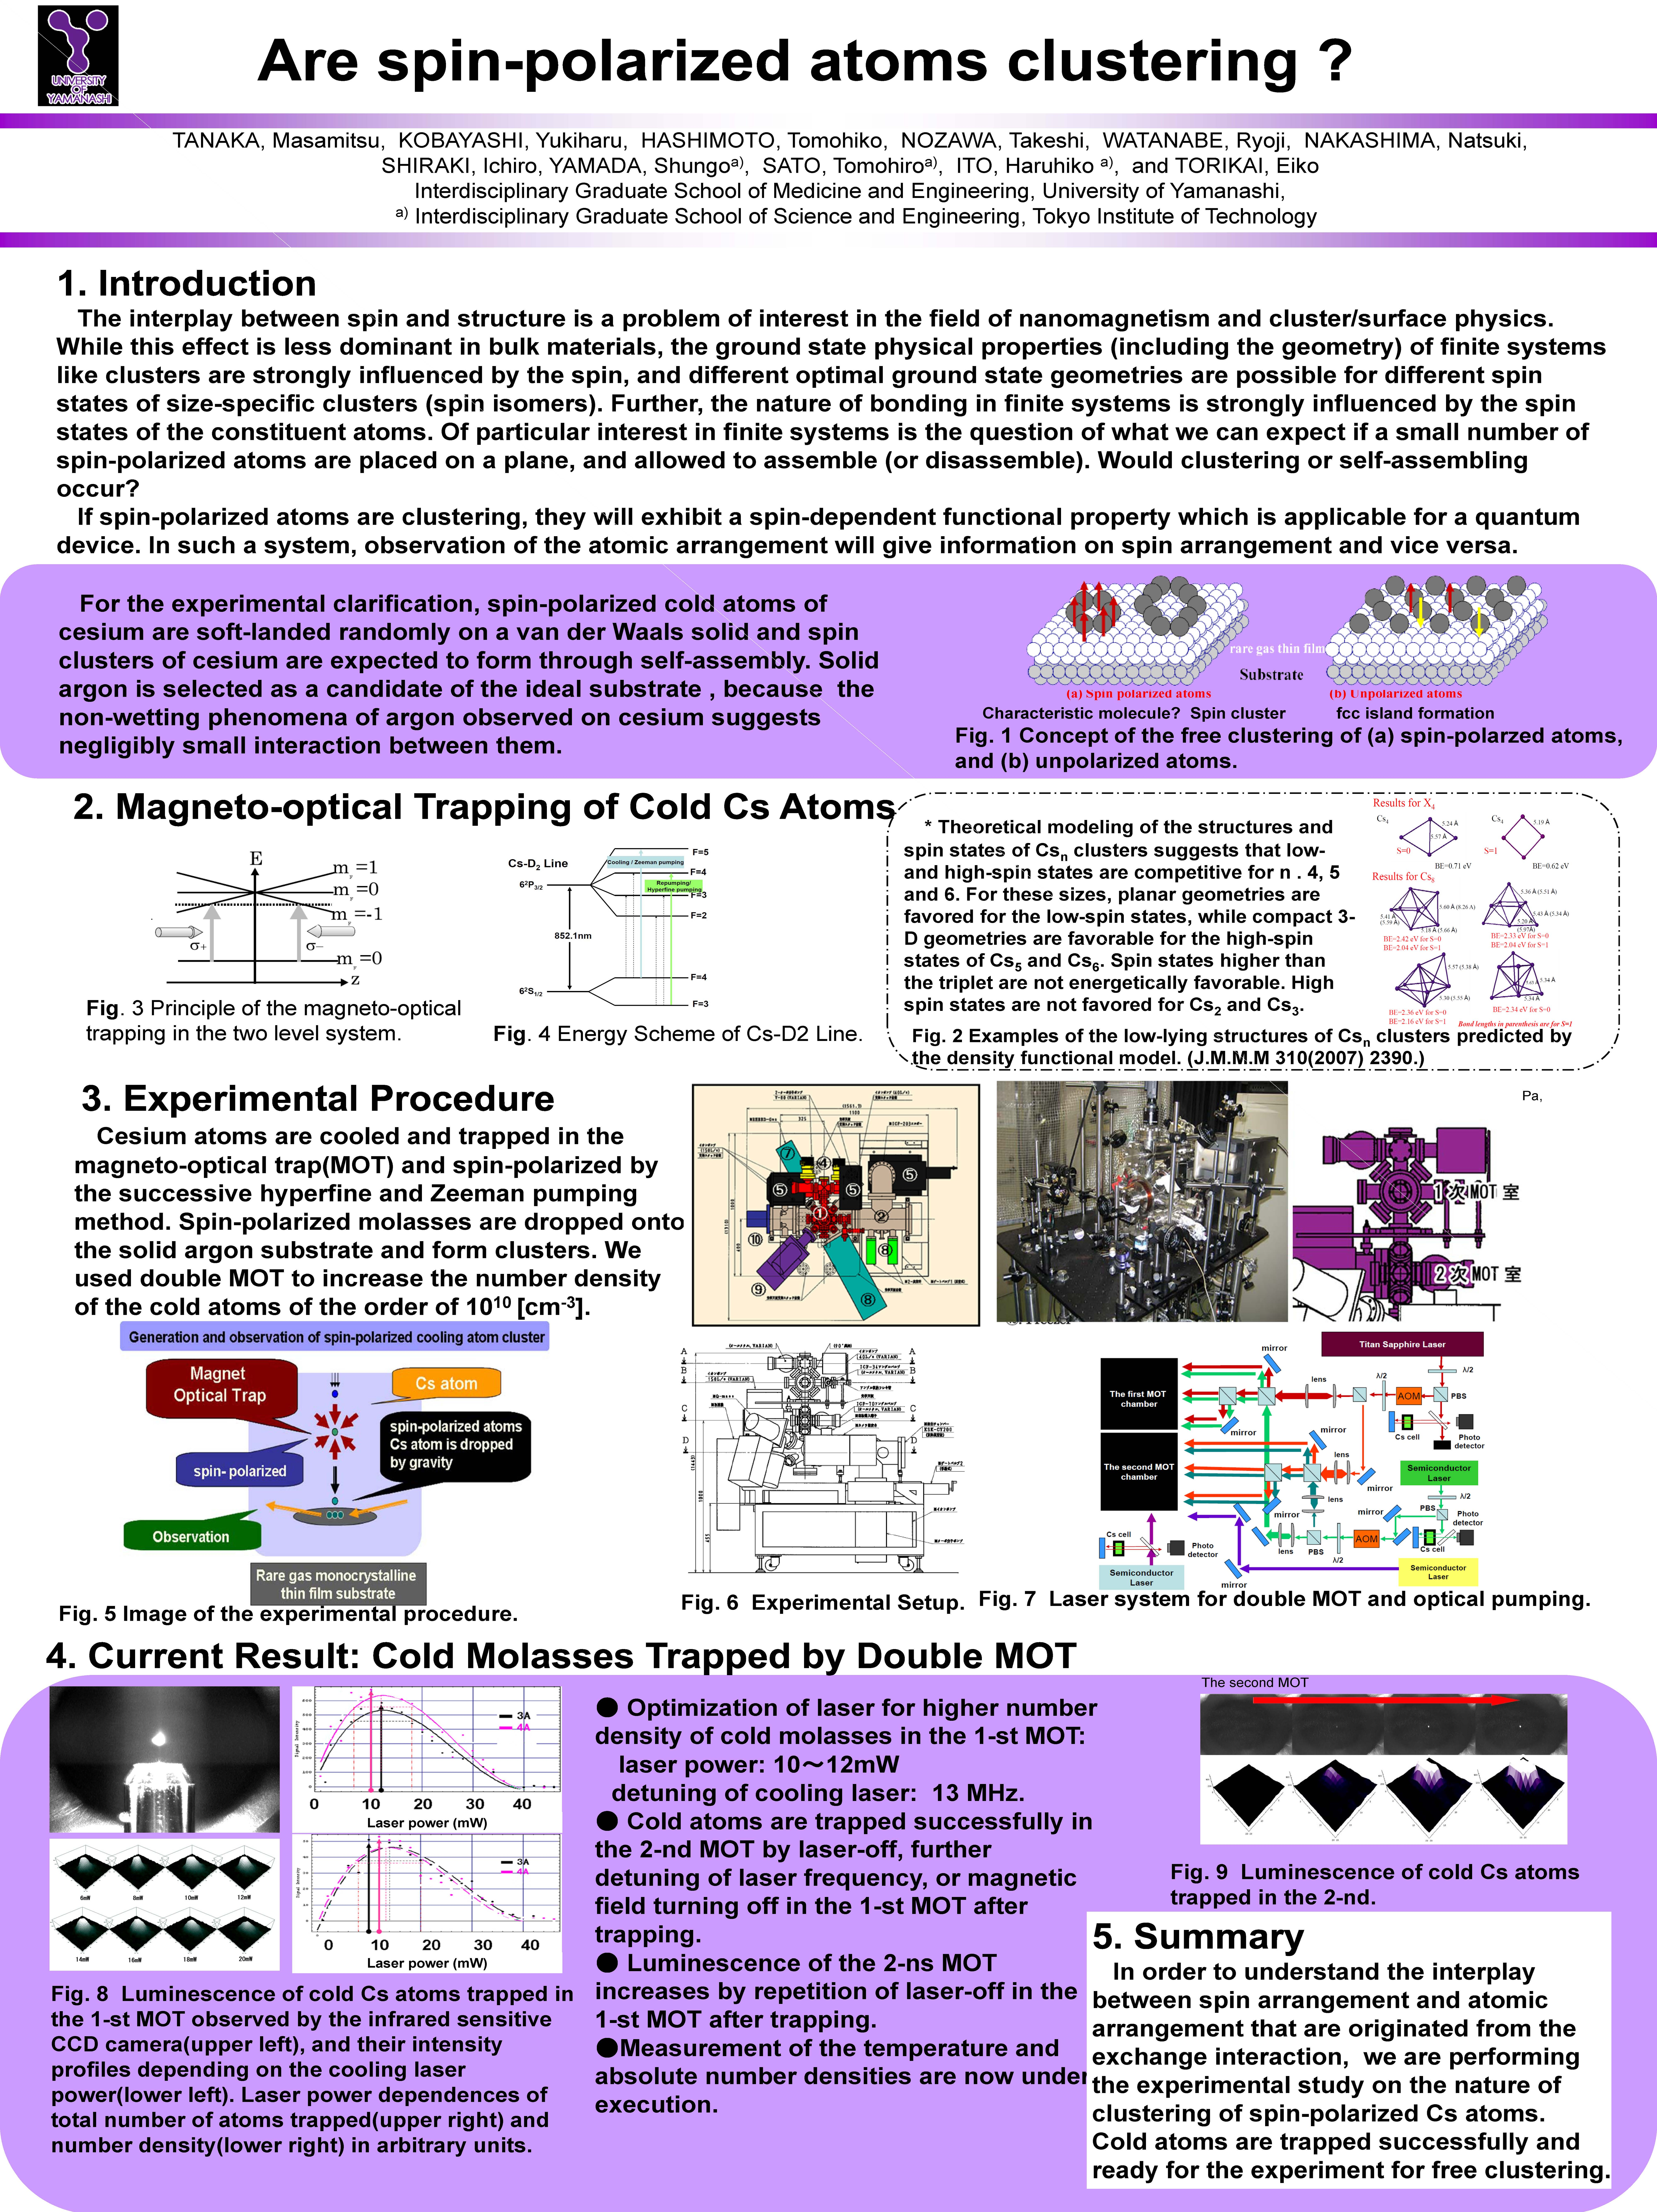 ASEPS: ASia-Europe Physics Summit (24-26 mars 2010) · IN2P3